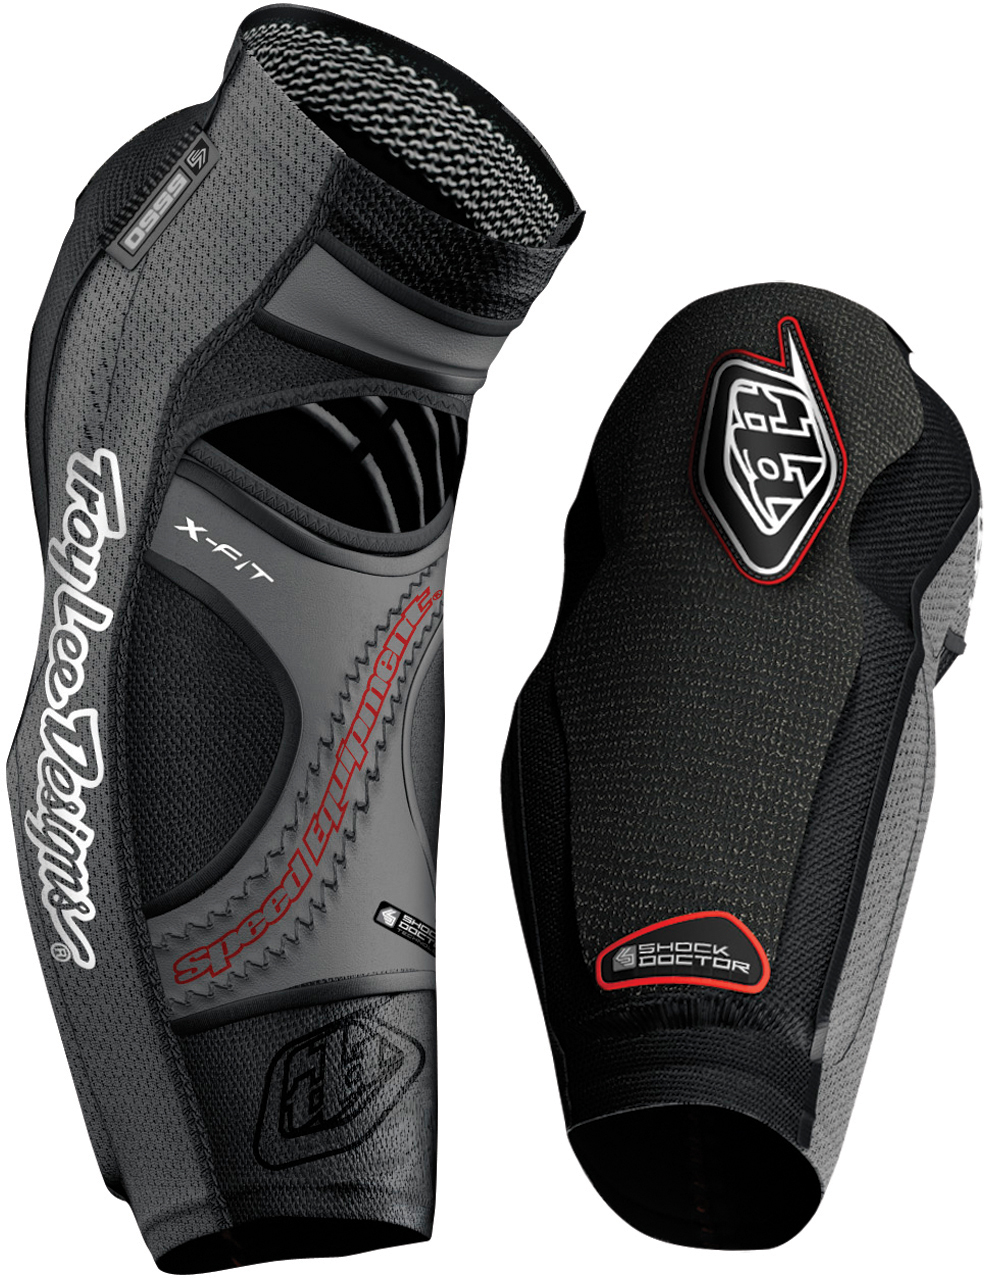 Troy Lee Designs 5550 Elbow/Forearm Guards | Amour